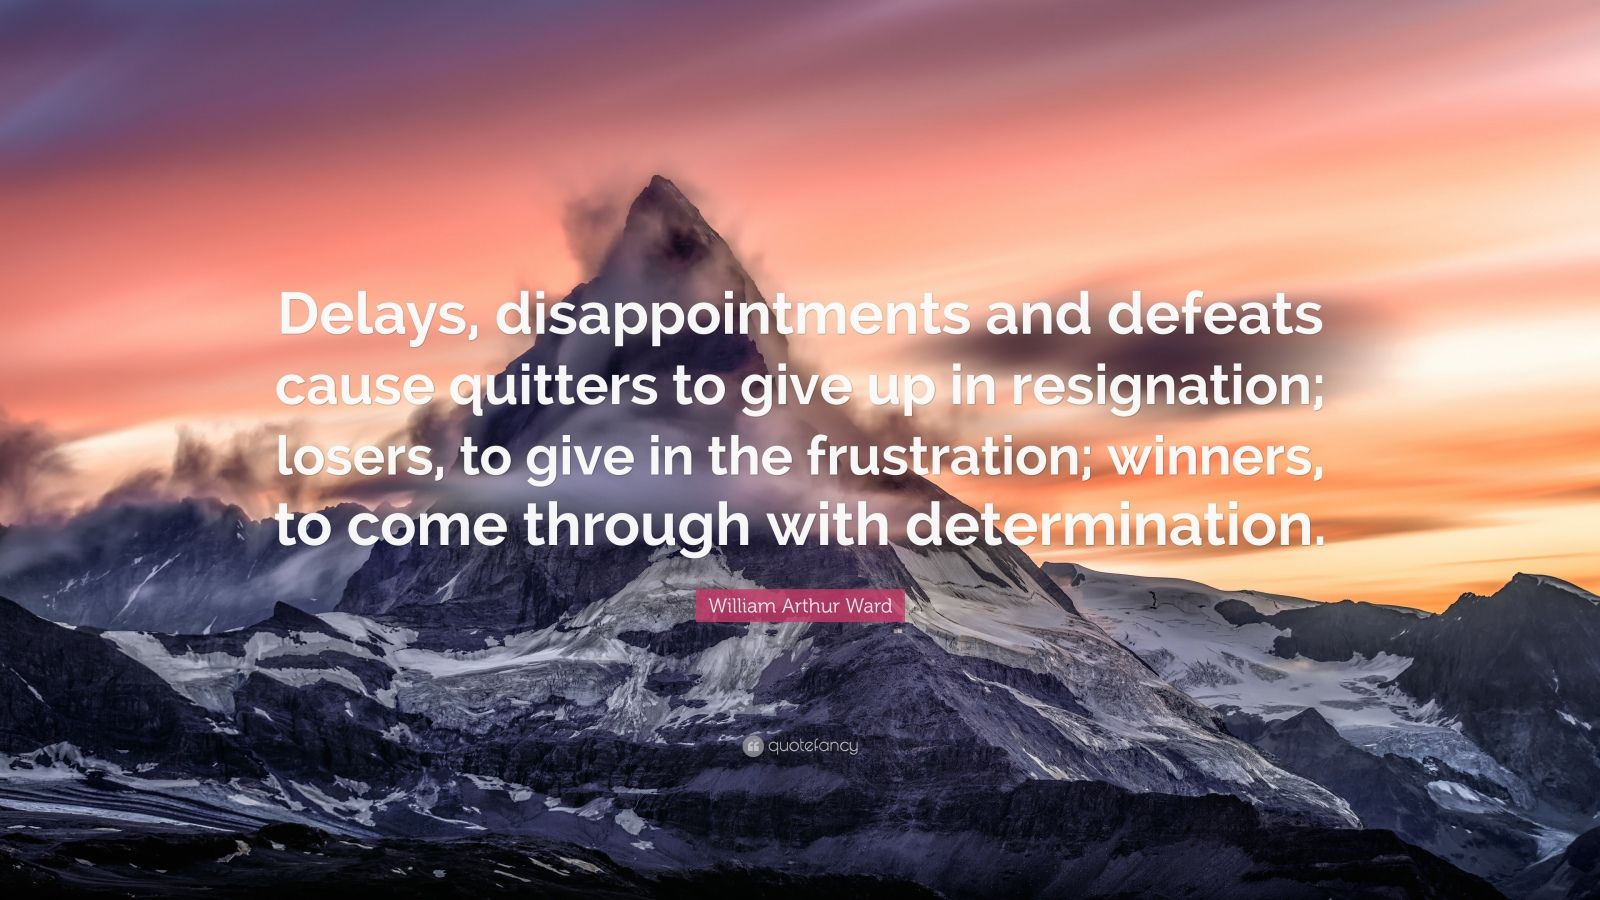 """William Arthur Ward Quote: """"Delays, disappointments and defeats cause quitters to give up in resignation; losers, to give in the frustration; winners, to come through with determination."""""""